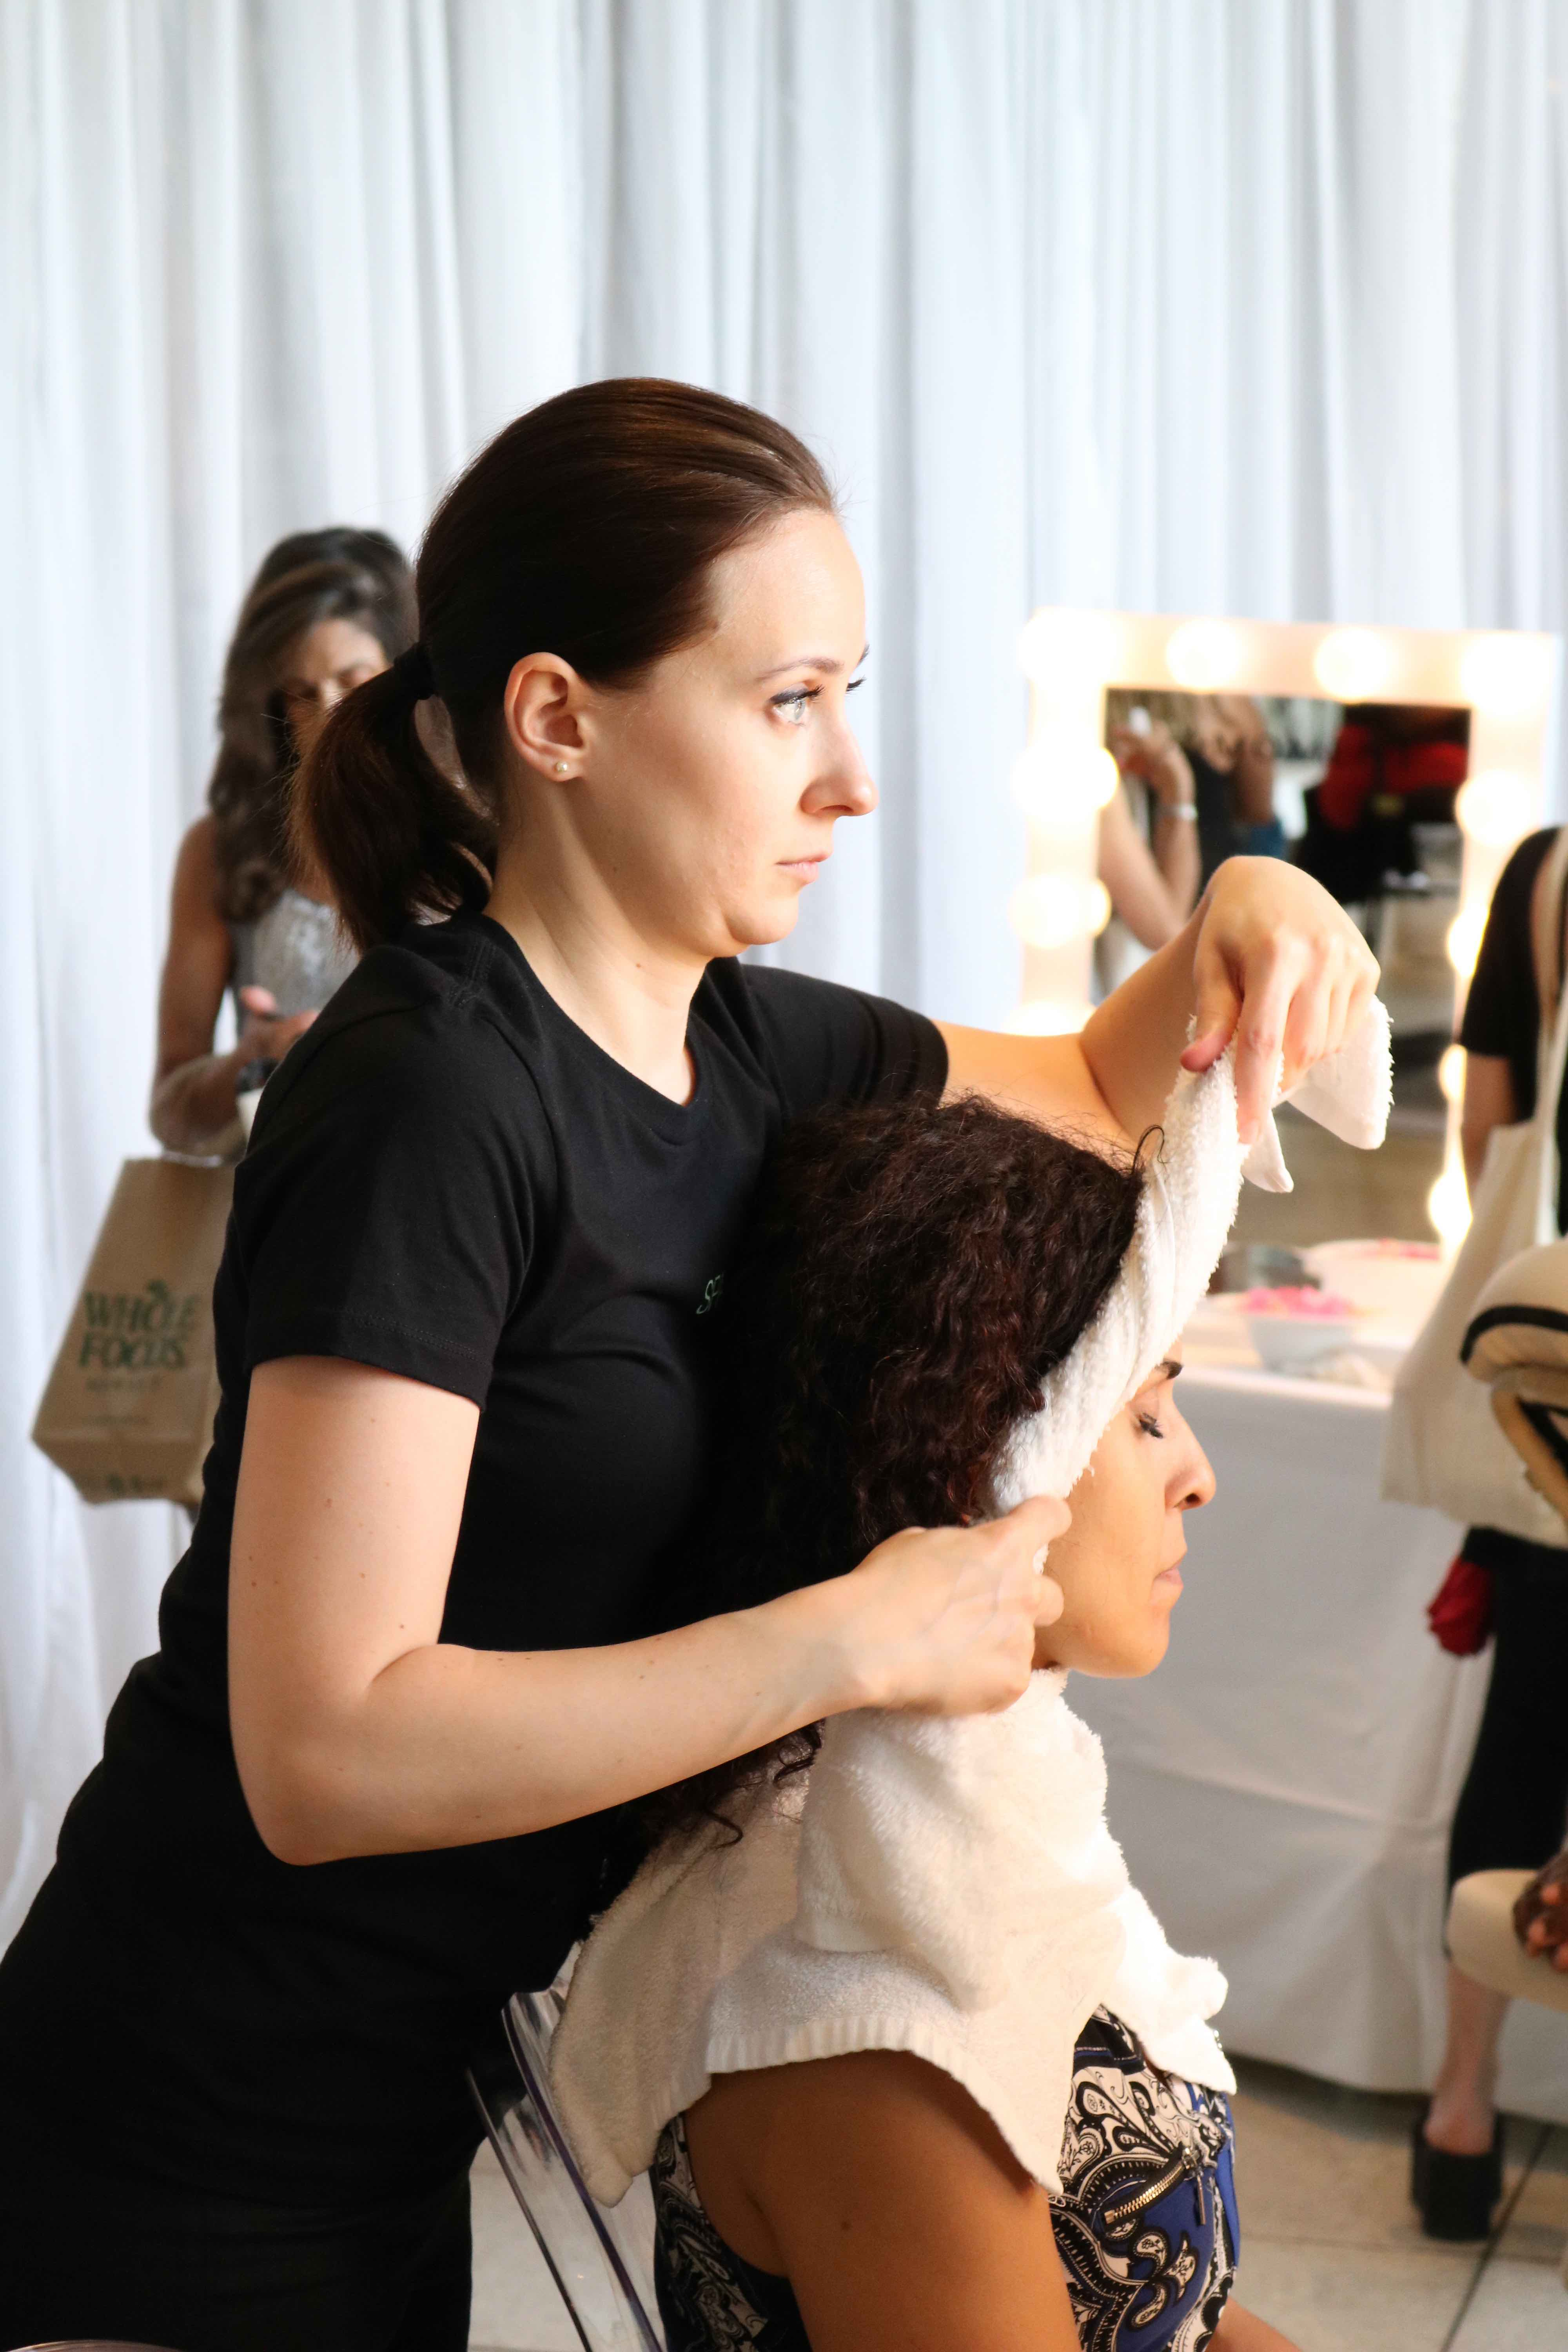 The Shops At Columbus Circle Embrace Clean Beauty Happenings All Month